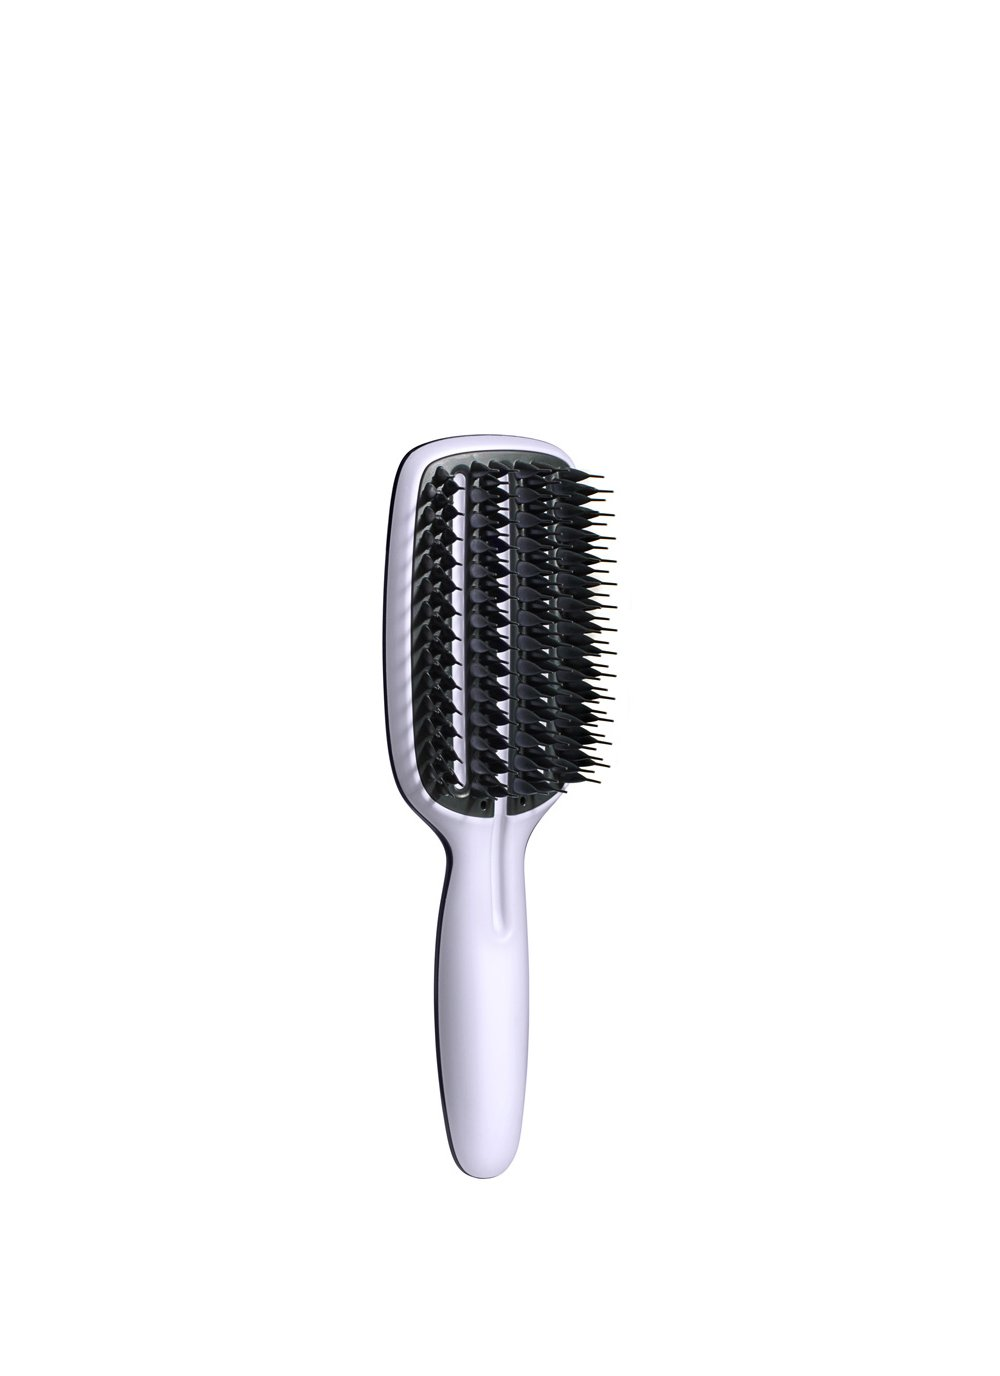 Cepillo Tangle Teezer Pelo Maraña Teezer Blow Styling Completa Paddle ACTION EUROPE GmbH BS-FP-DP-010914 14233_Blanco